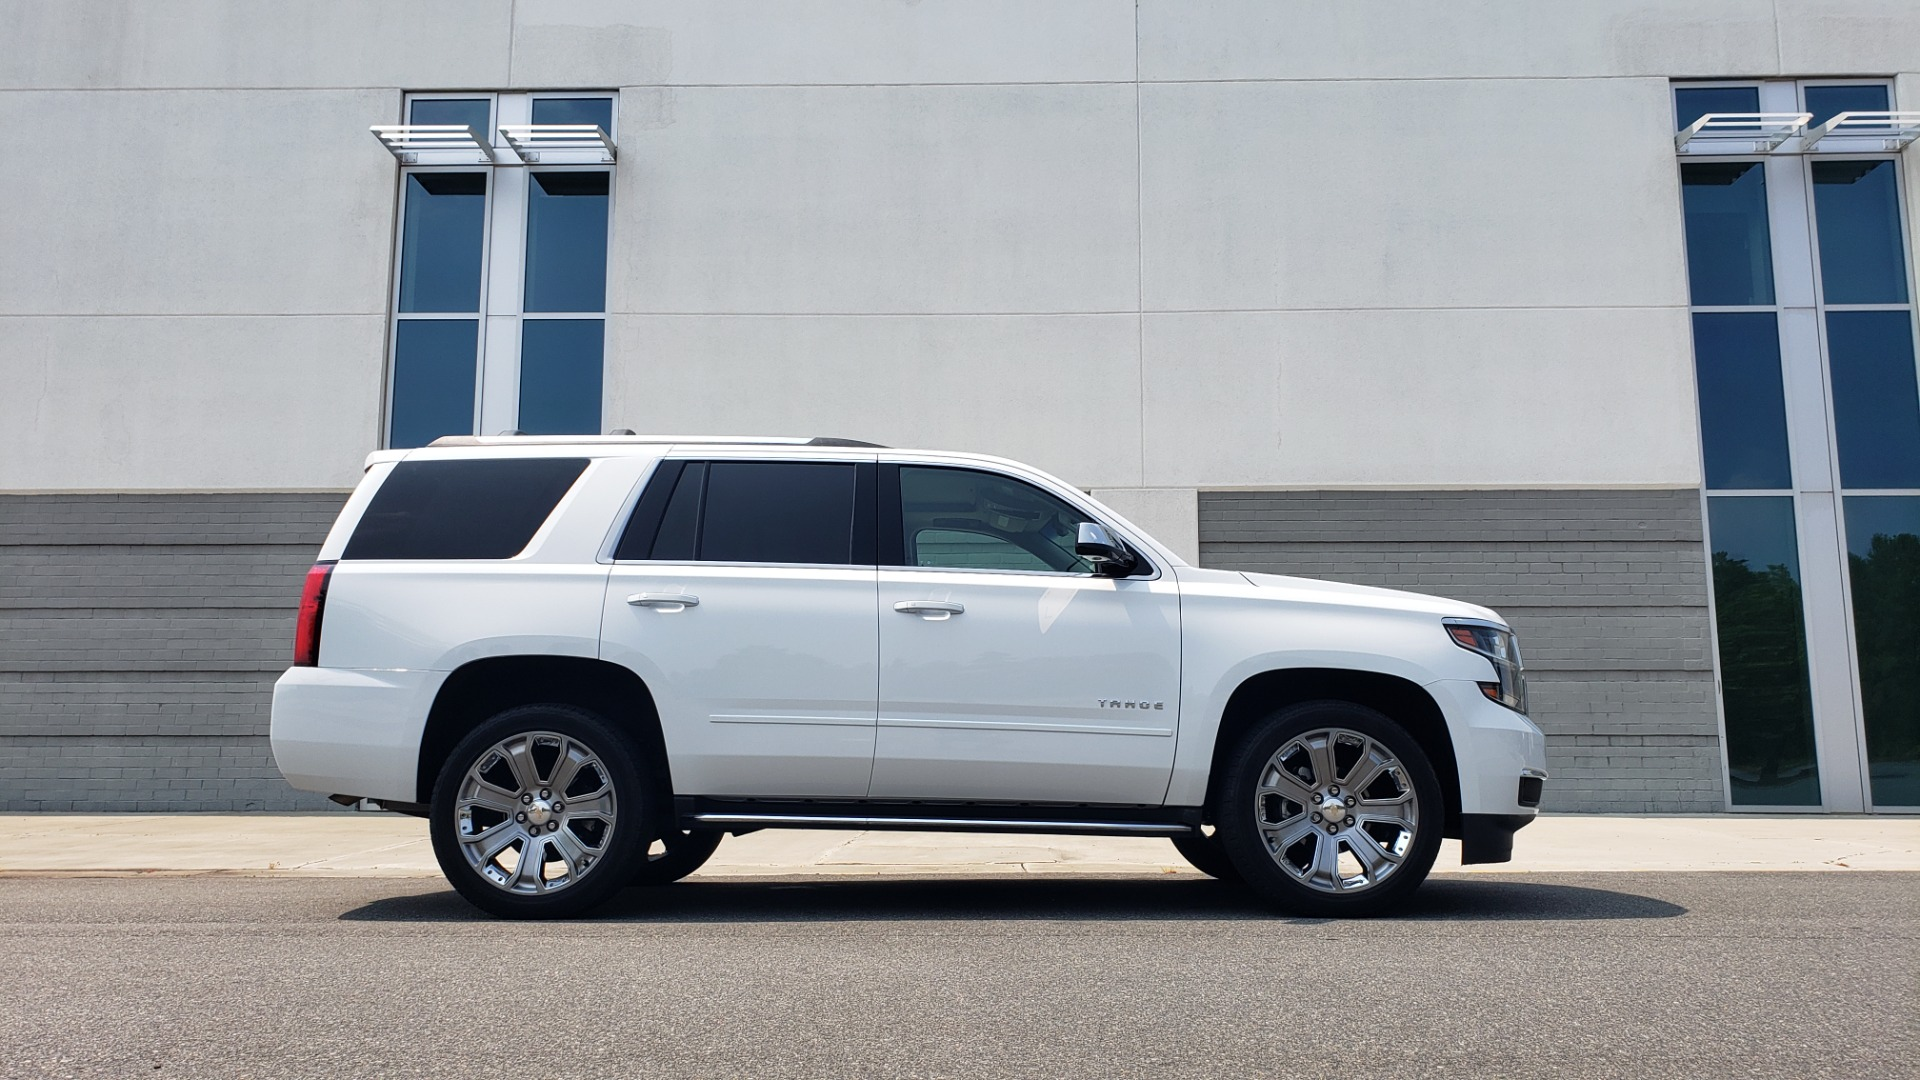 Used 2018 Chevrolet TAHOE PREMIER 4WD / NAV / SUNROOF / BOSE / 3-ROW / HUD / REARVIEW for sale $63,995 at Formula Imports in Charlotte NC 28227 9